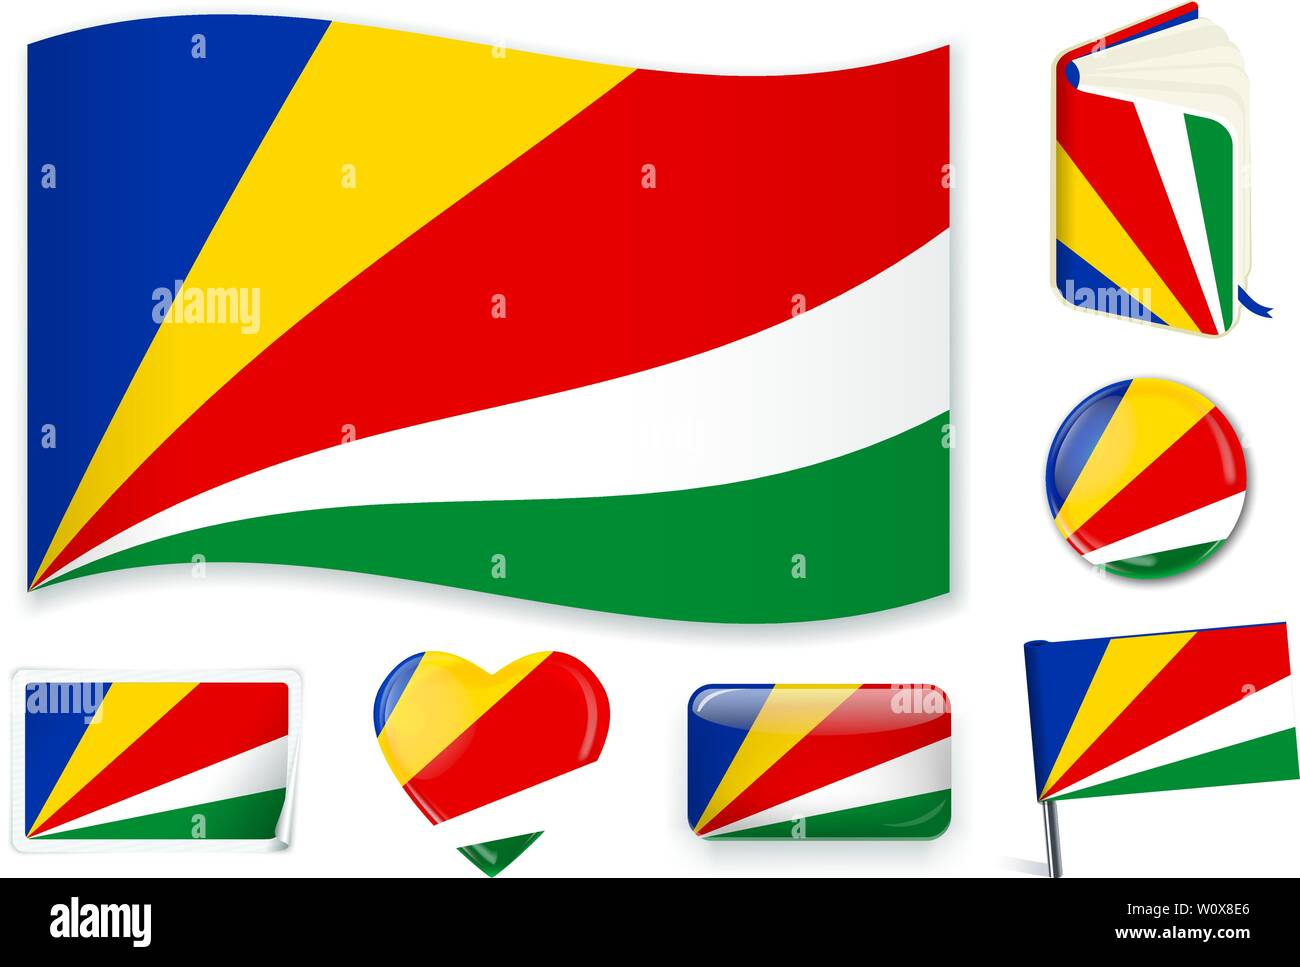 Seychelles national flag. Vector illustration. 3 layers. Shadows, flat flag, lights and shadows. Collection of 220 world flags. Accurate colors. Easy changes. - Stock Image